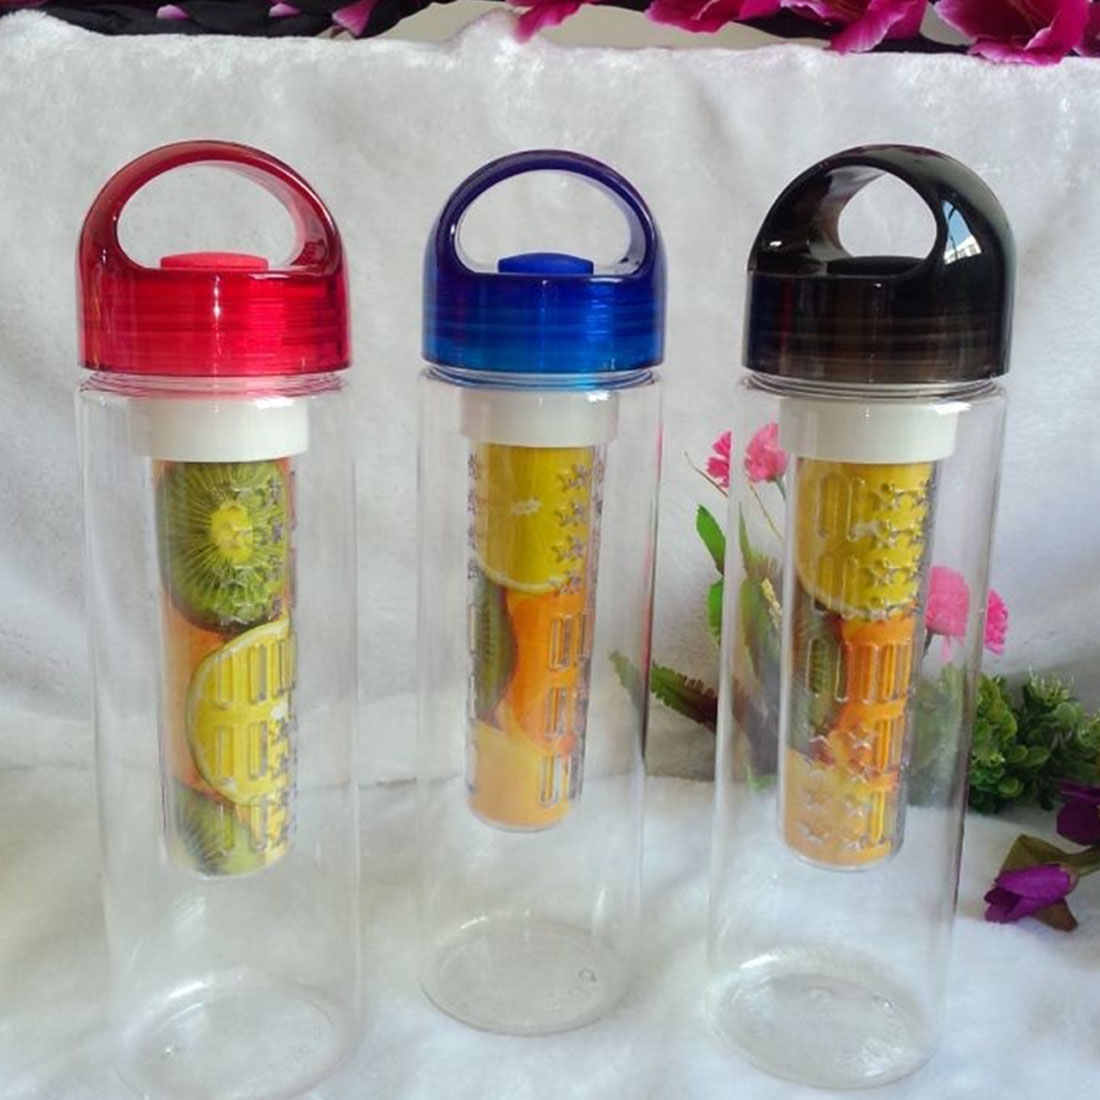 700ML BPA Plastic Fruit Infuser Water Bottle With Filter